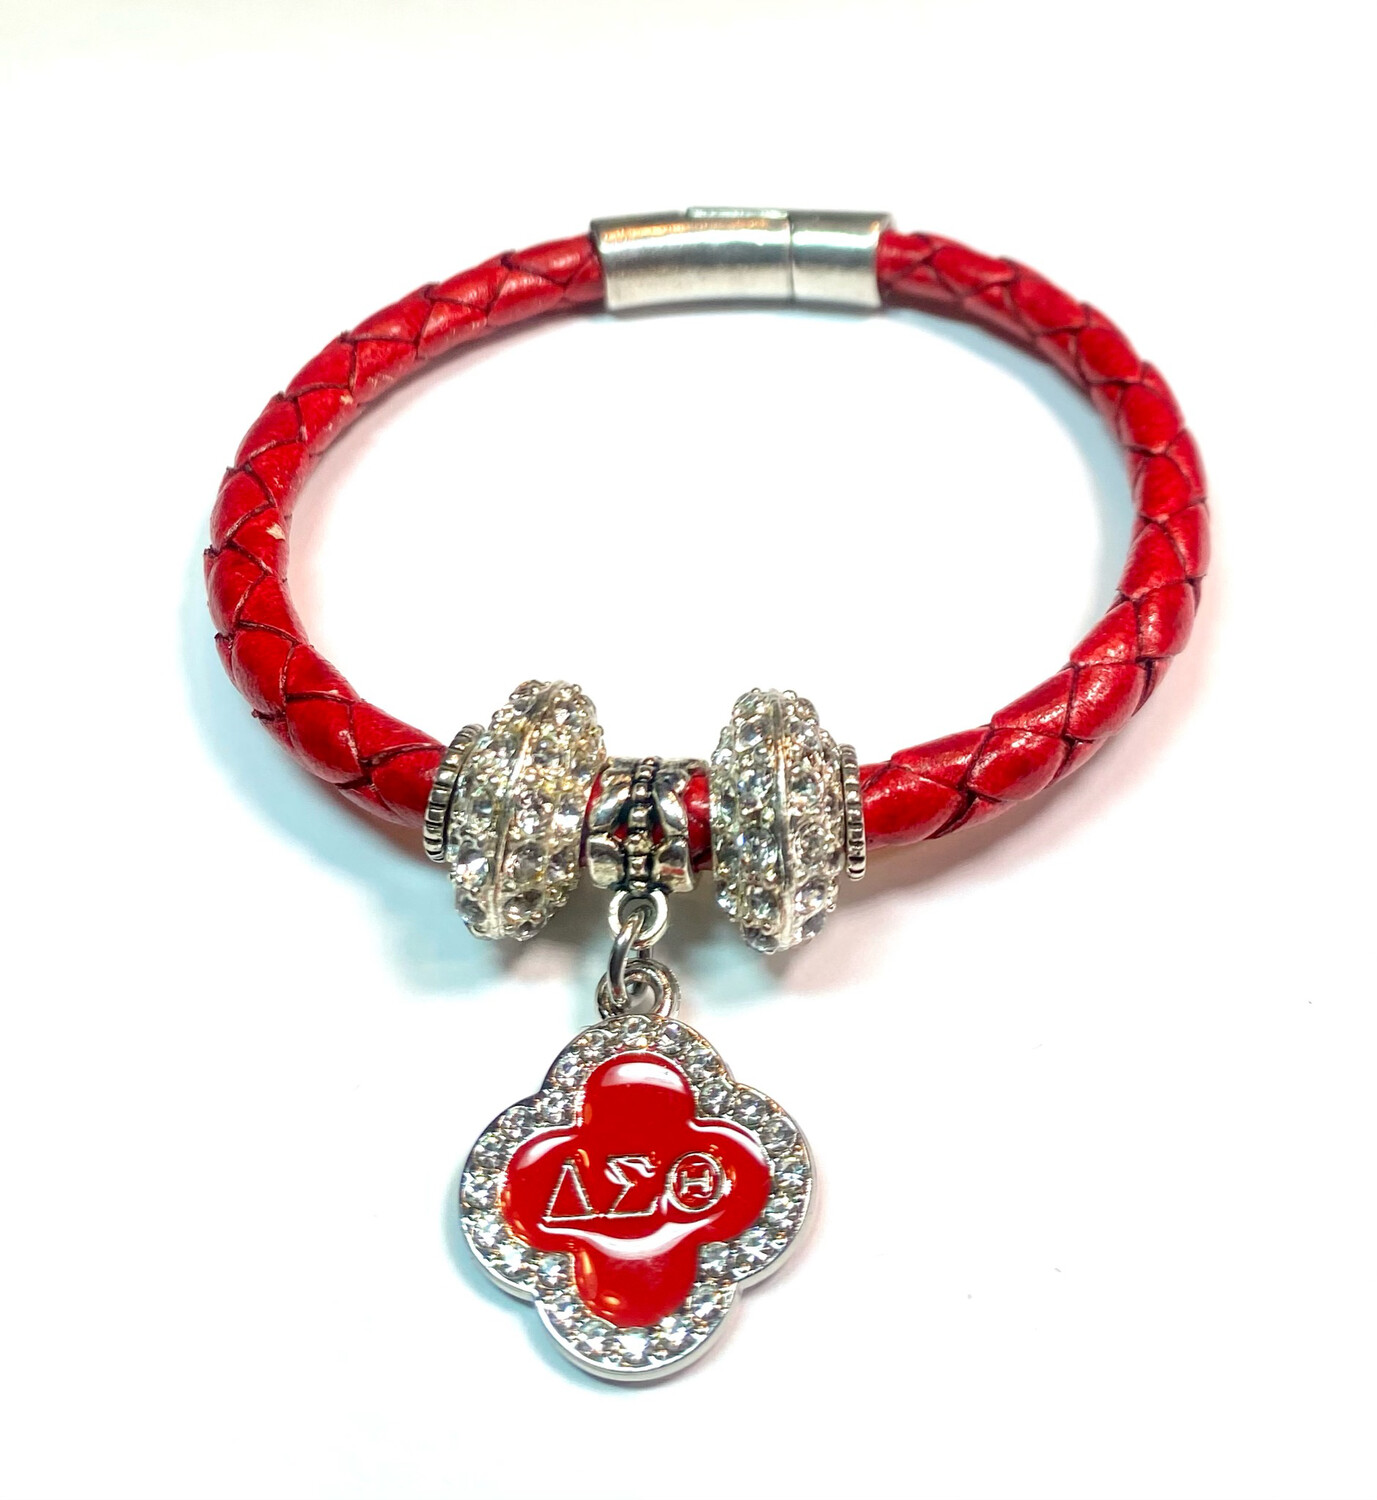 Bracelet | Red Leather Rope With Delta Sigma Theta Bling Classy Creations Originals